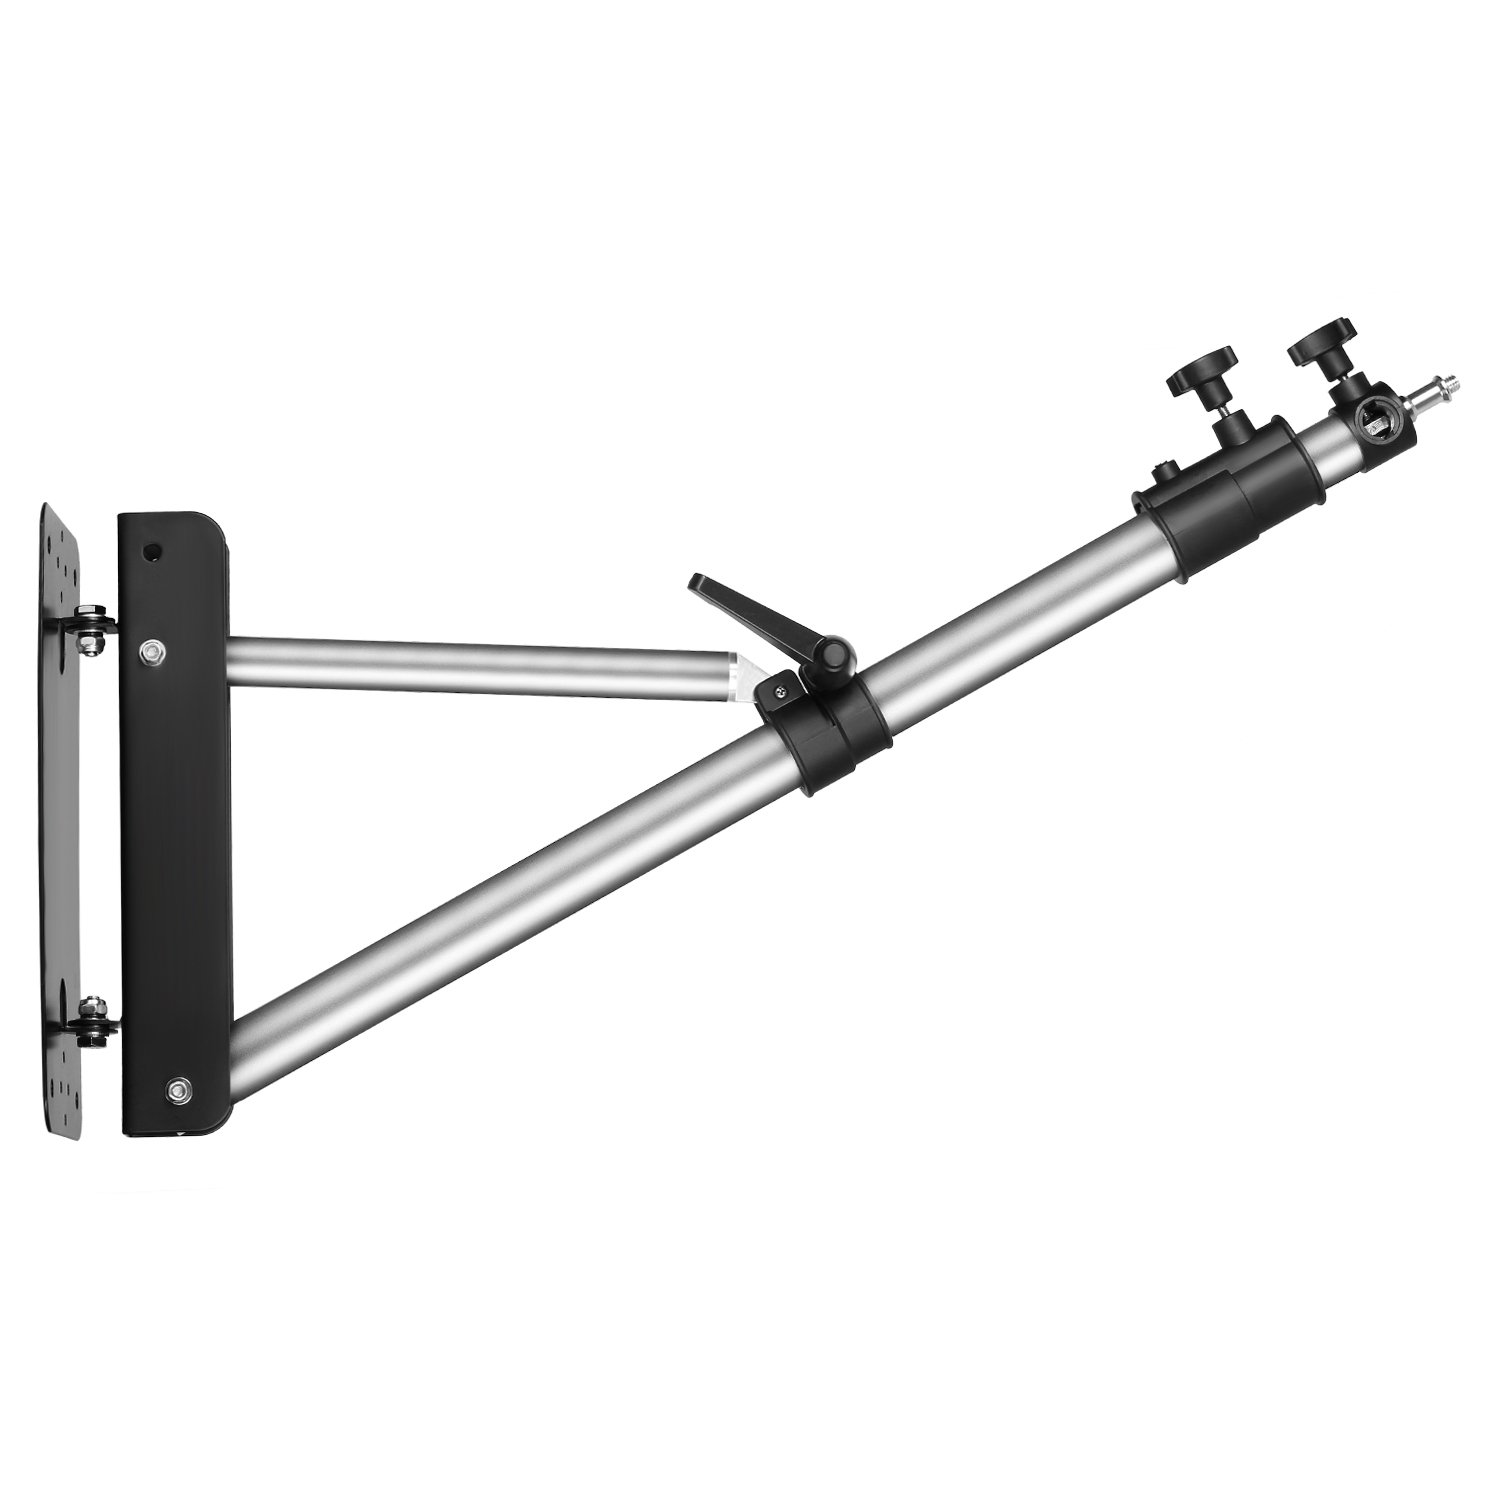 Neewer Wall Mounting Boom Arm with Triangle Base for Photography Studio Video Strobe Light Monolight Softbox Umbrella Reflector, 180 Degree Rotation, Max Length 66.5 inches/169centimeters (Silver) by Neewer